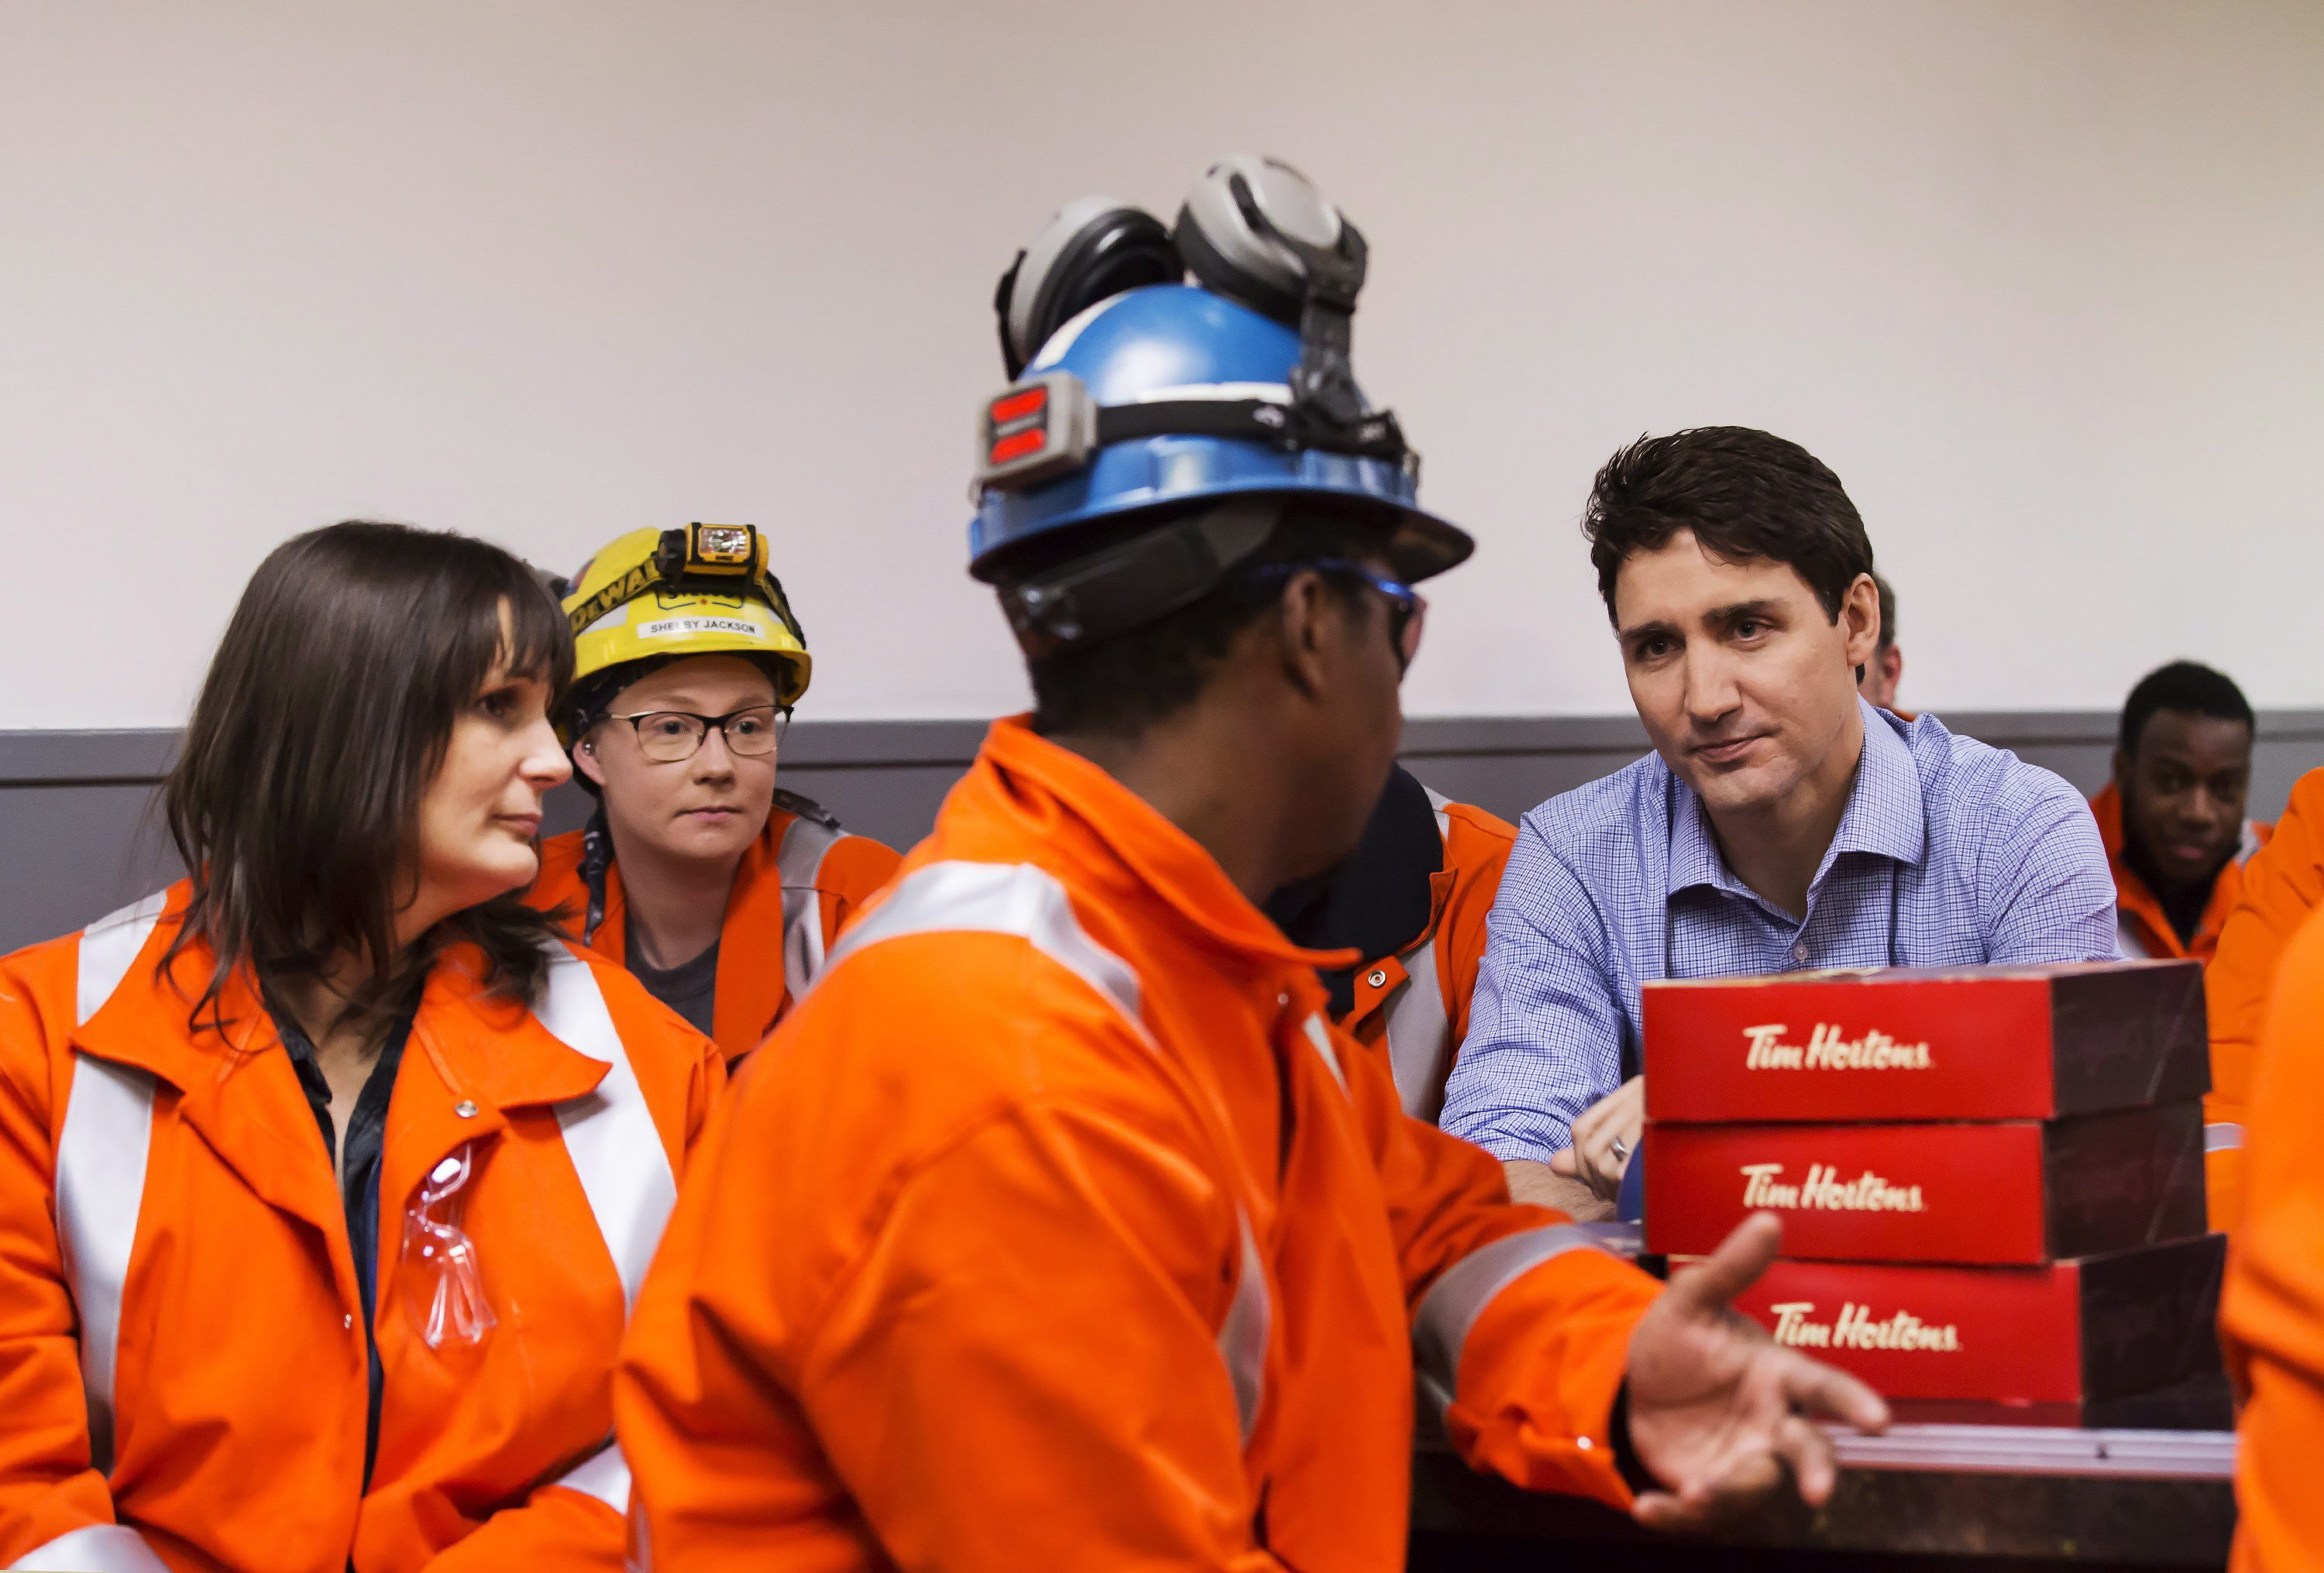 'We had your backs': Trudeau on country's steel and aluminum workers